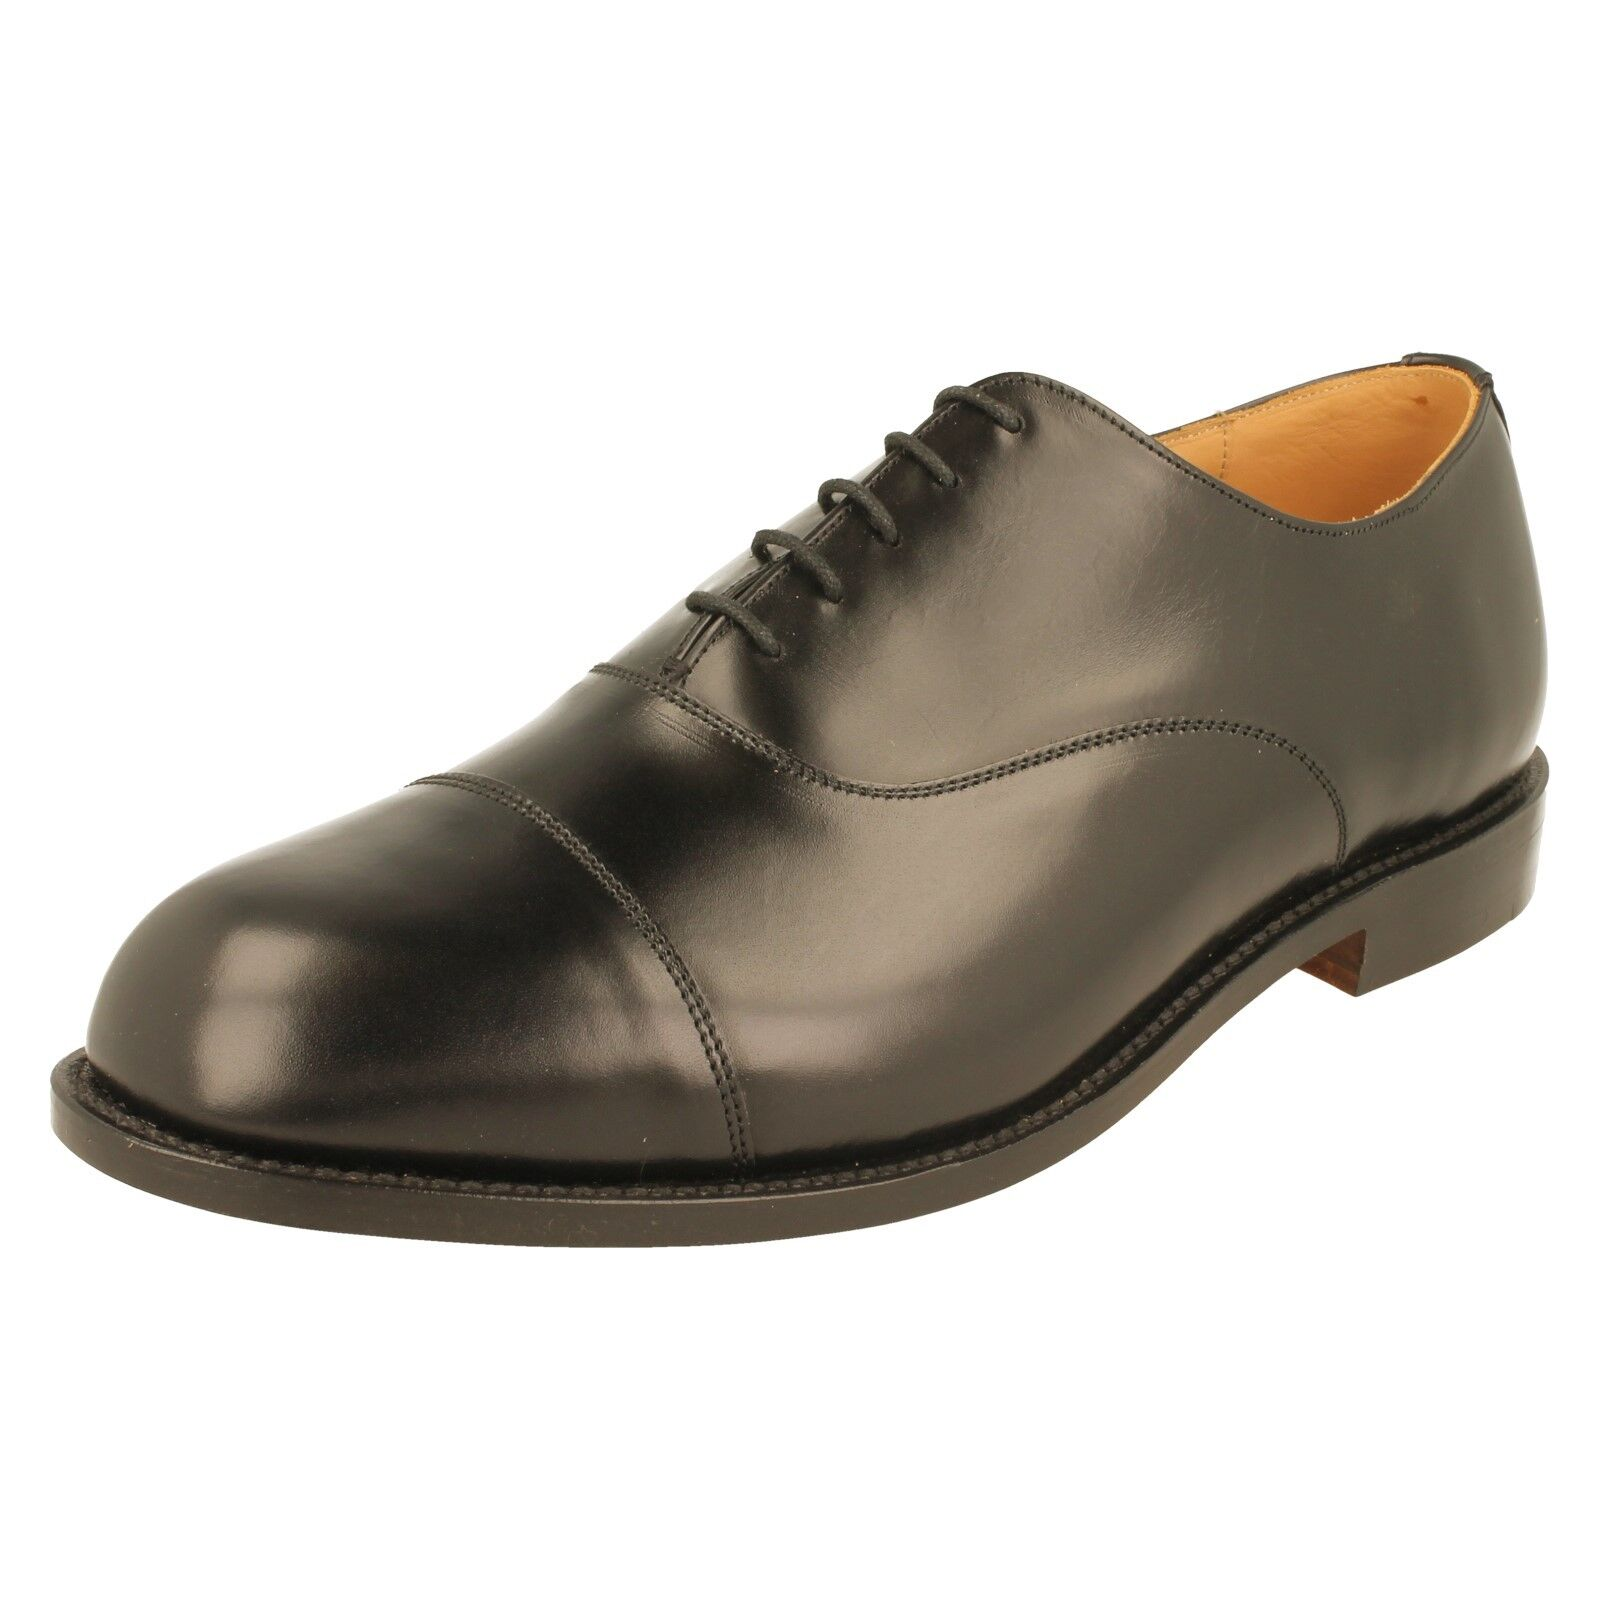 Zapatos para Hombre Goodyear Welted DB Oxford EE-4E Ancho FITT-T.